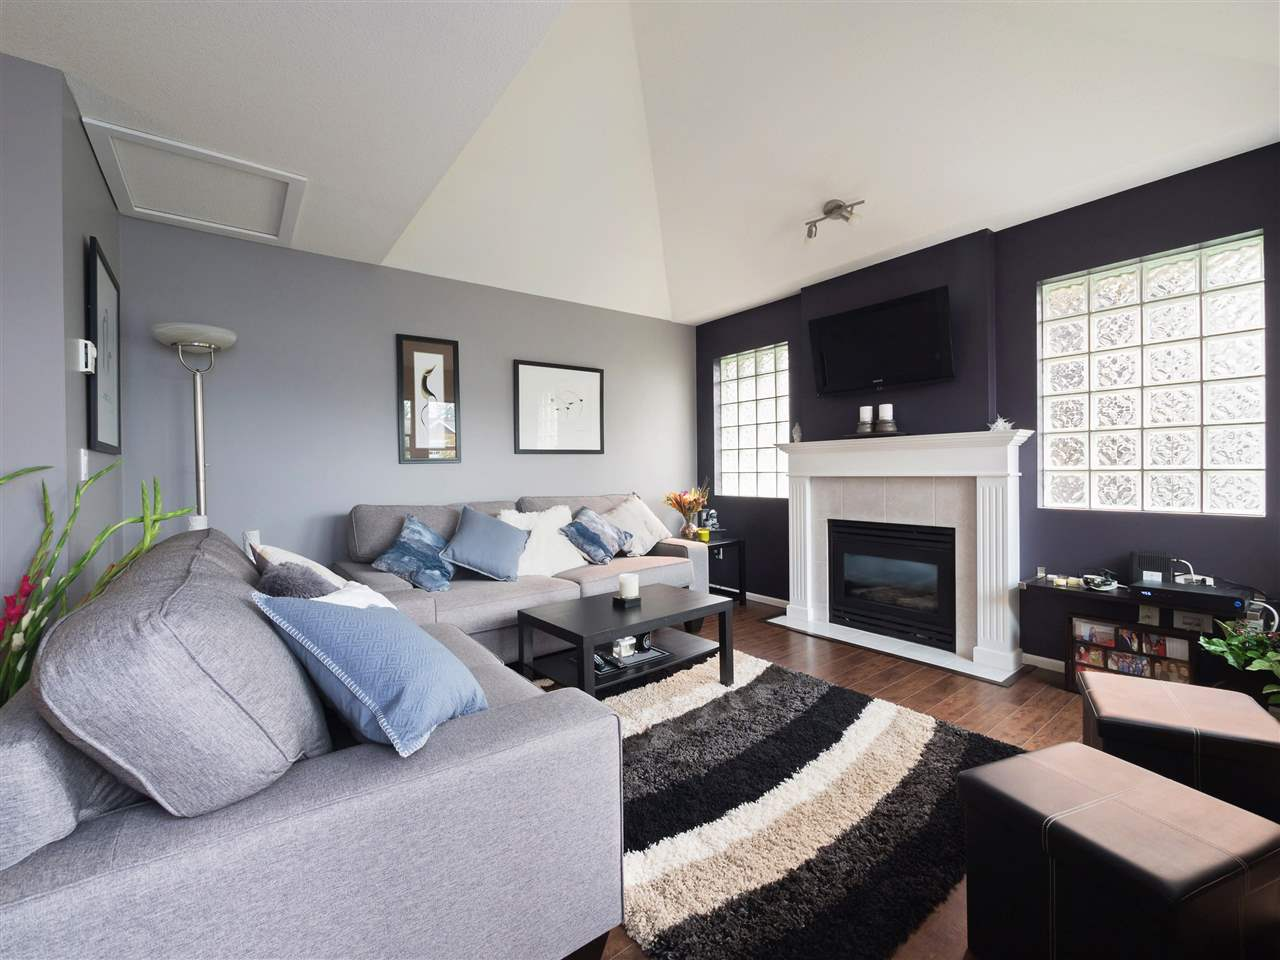 Condo Apartment at 301 1558 GRANT AVENUE, Unit 301, Port Coquitlam, British Columbia. Image 1